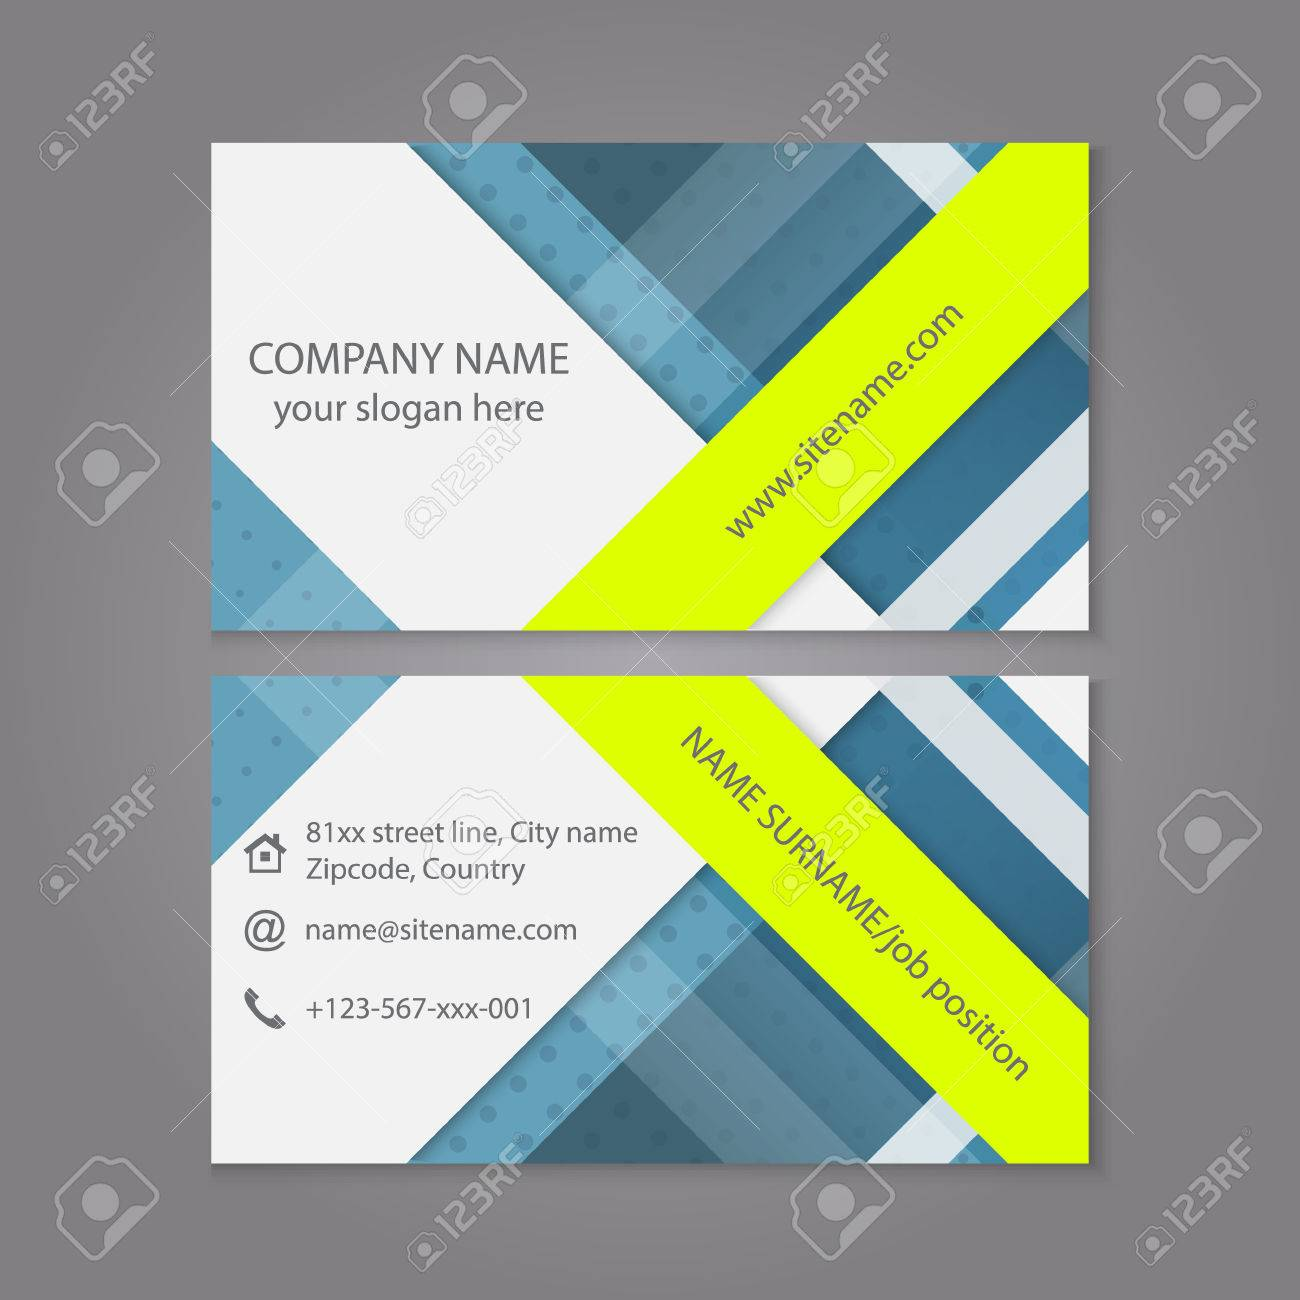 Modern simple business card template or visiting card set design modern simple business card template or visiting card set design for publishing print and colourmoves